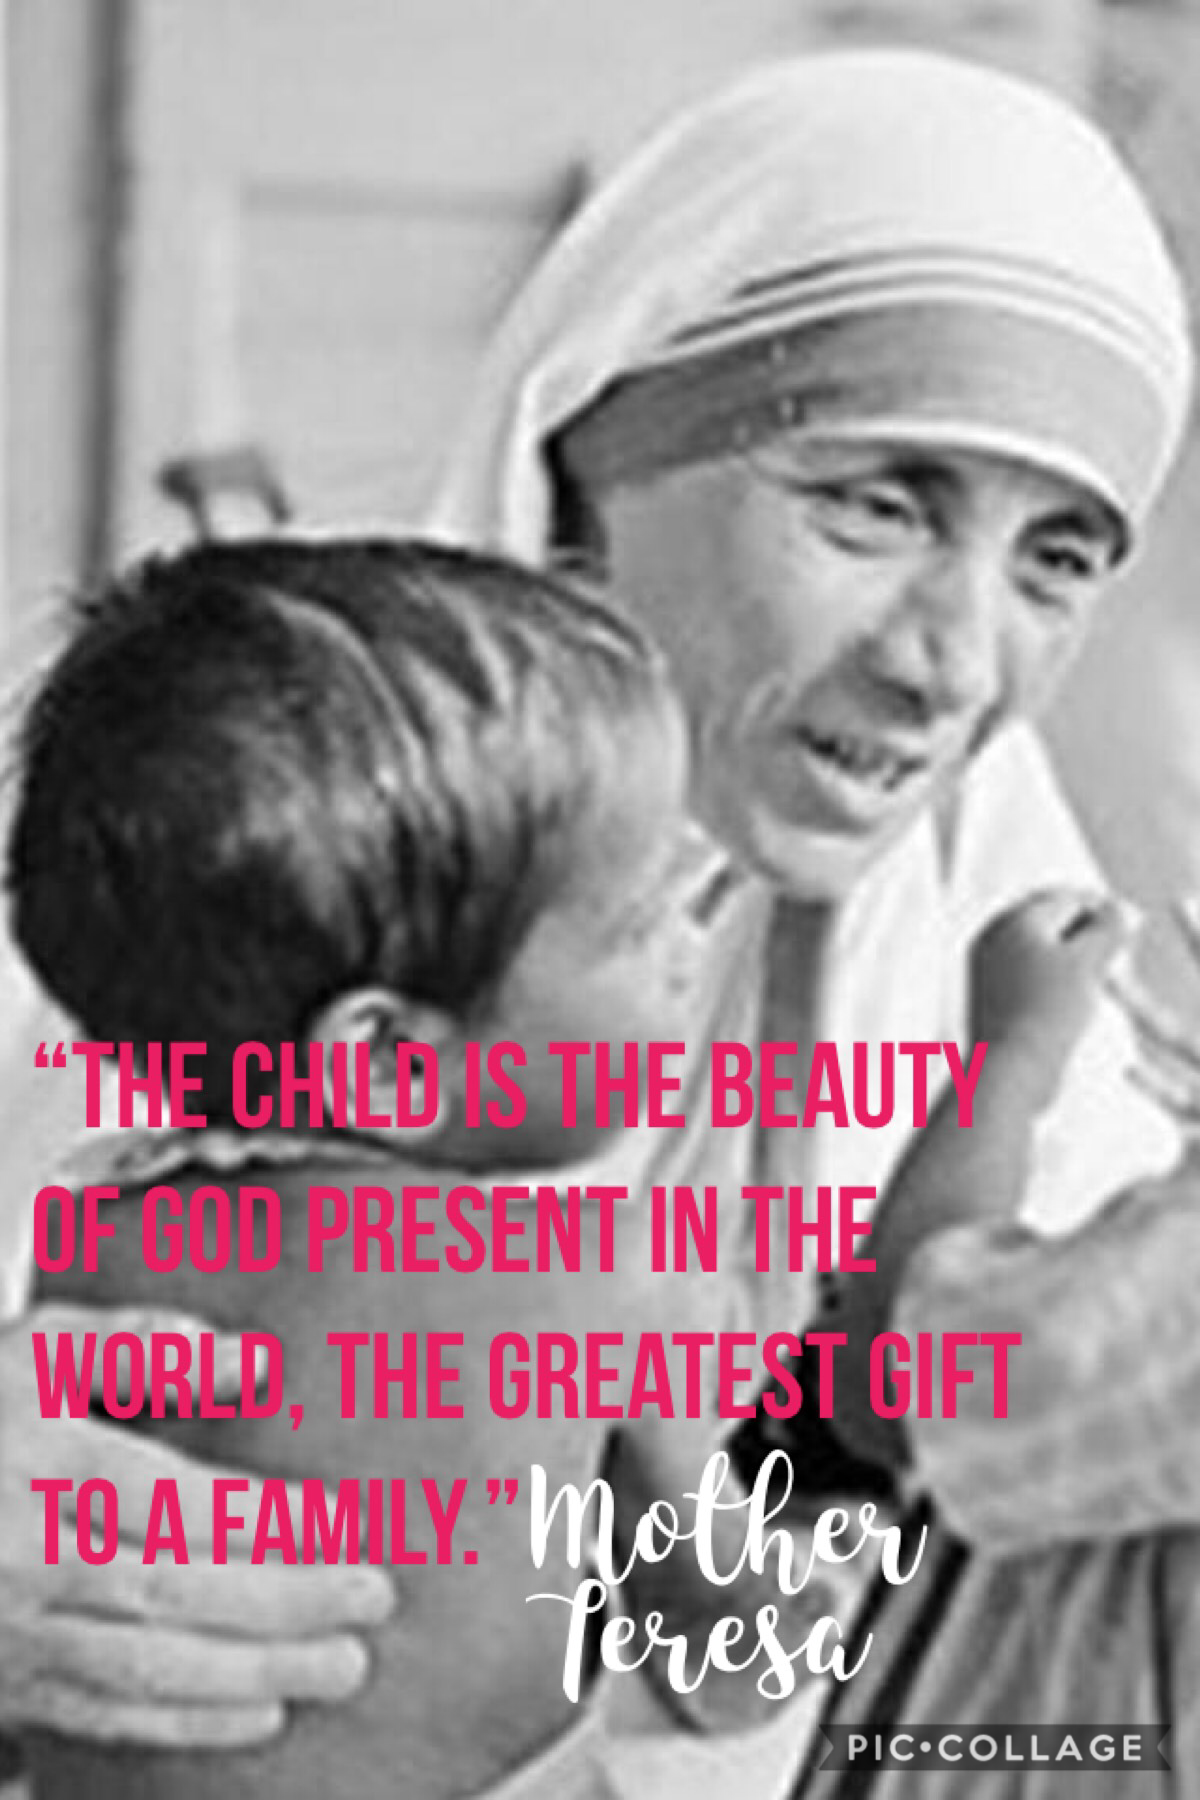 🌻Children and Mother Teresa=❤️❤️❤️